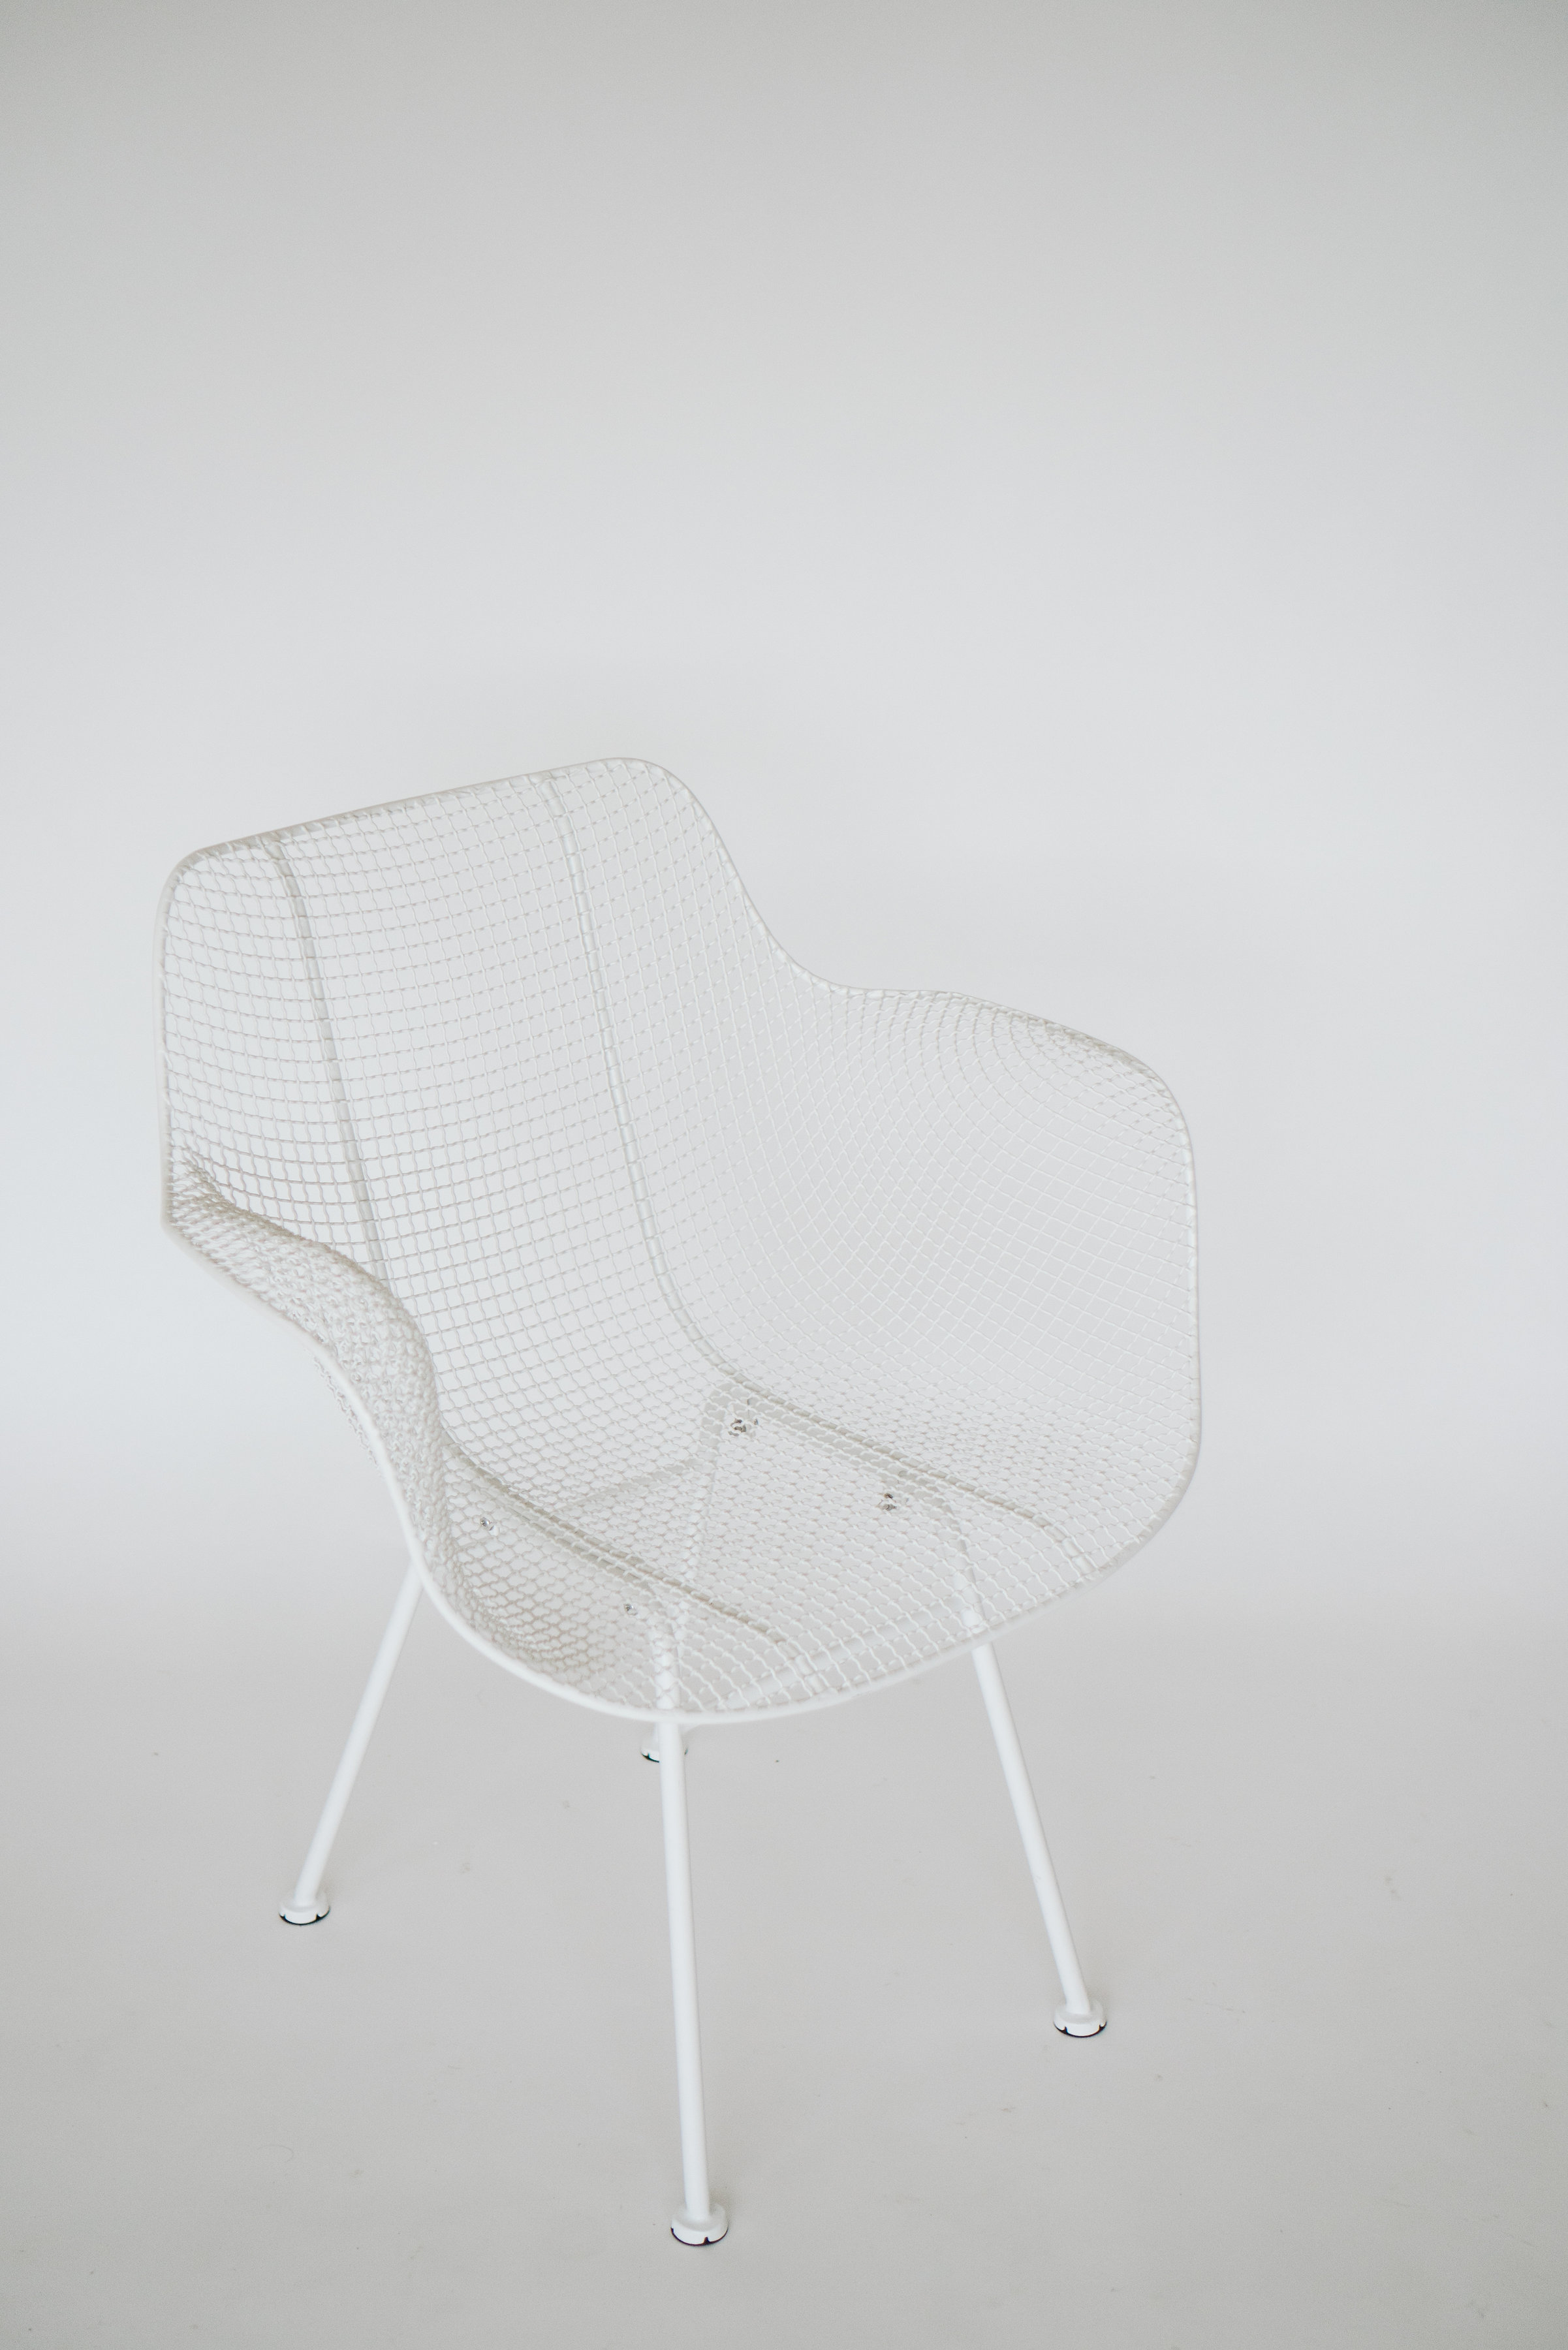 REMY CHAIRS